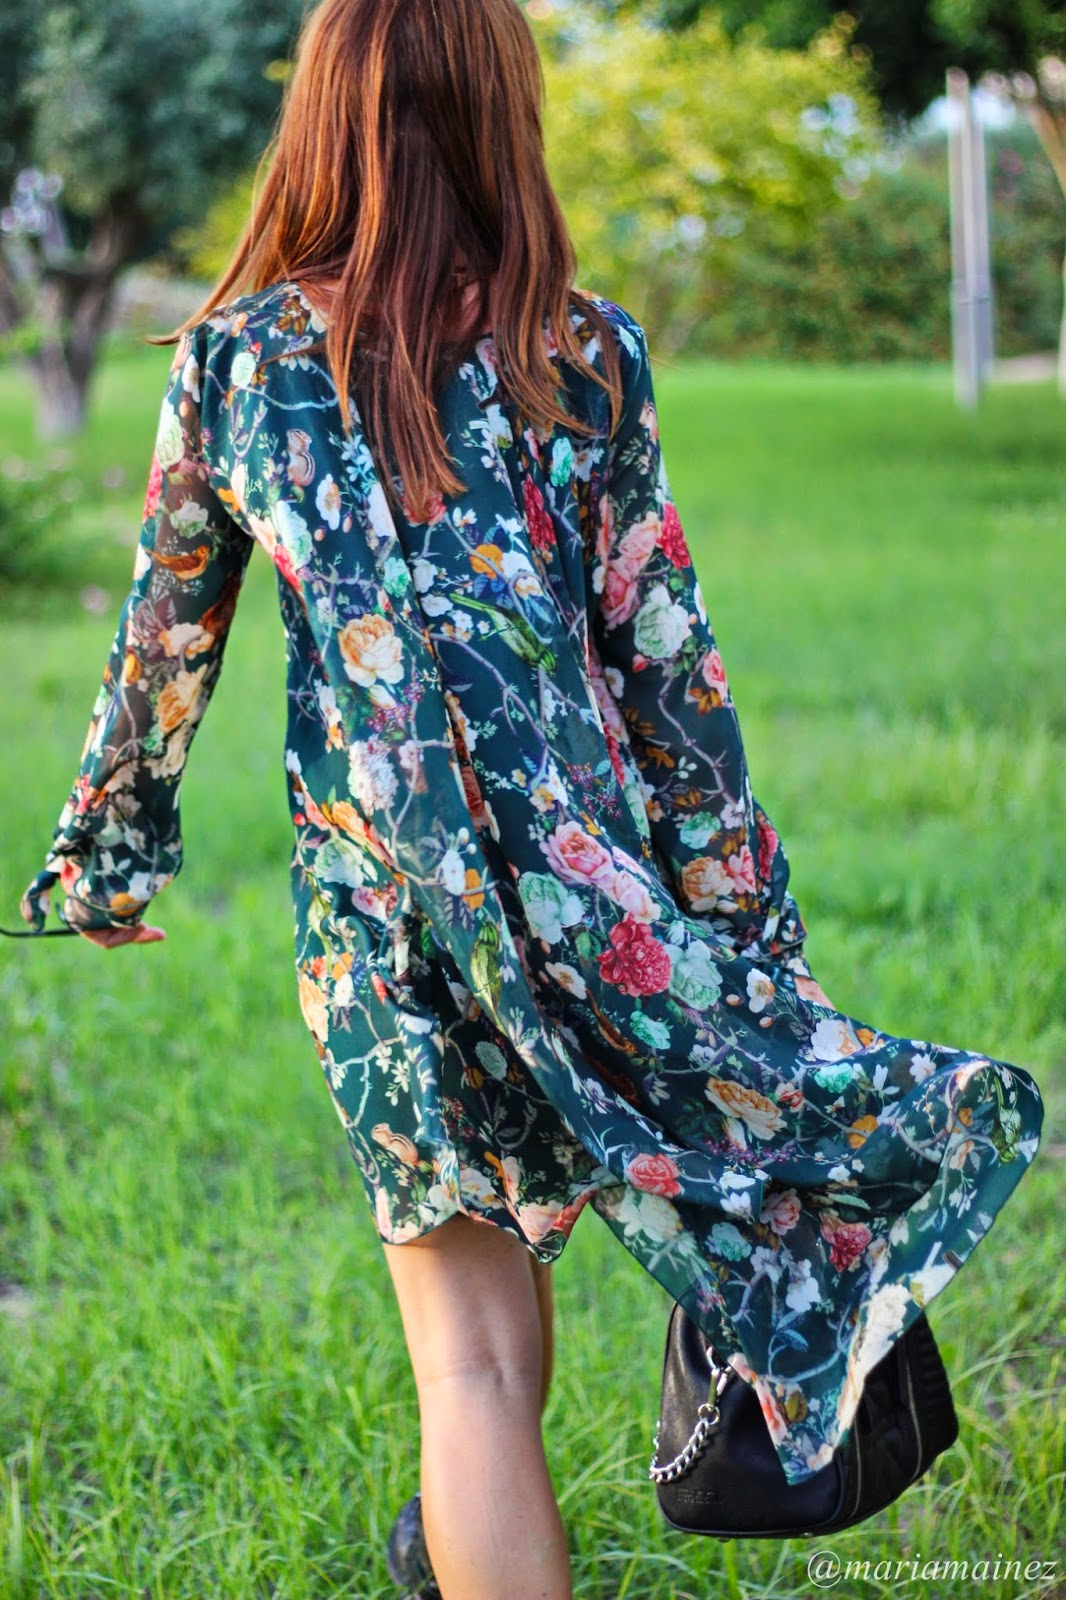 Denny Rose Fall Winter 2014 - Flowers - Fall - Dress Denny Rose - Green